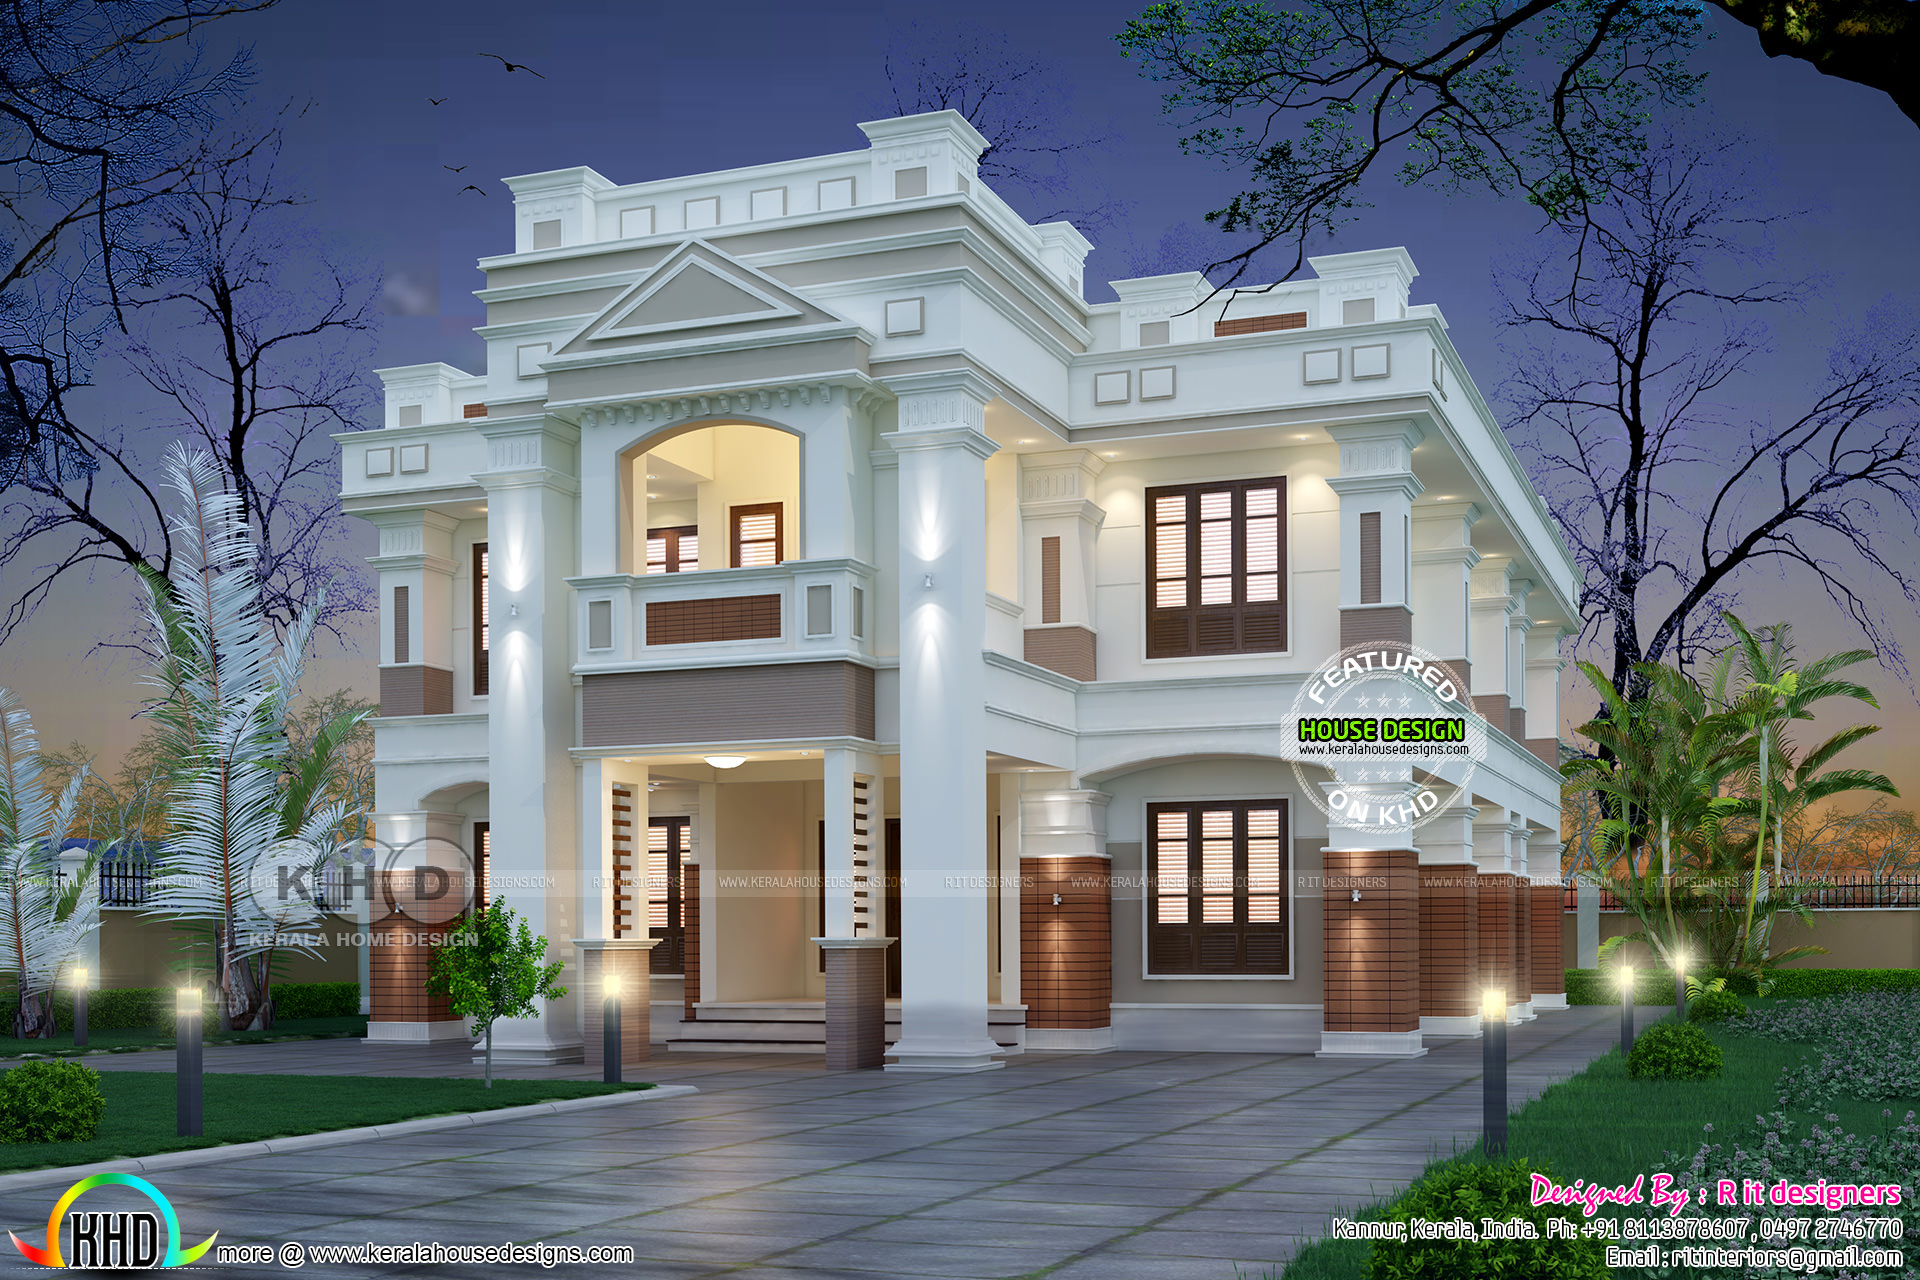 Modern Colonial Type Home Plan With 4 Bedrooms Kerala Home Design And Floor Plans 8000 Houses